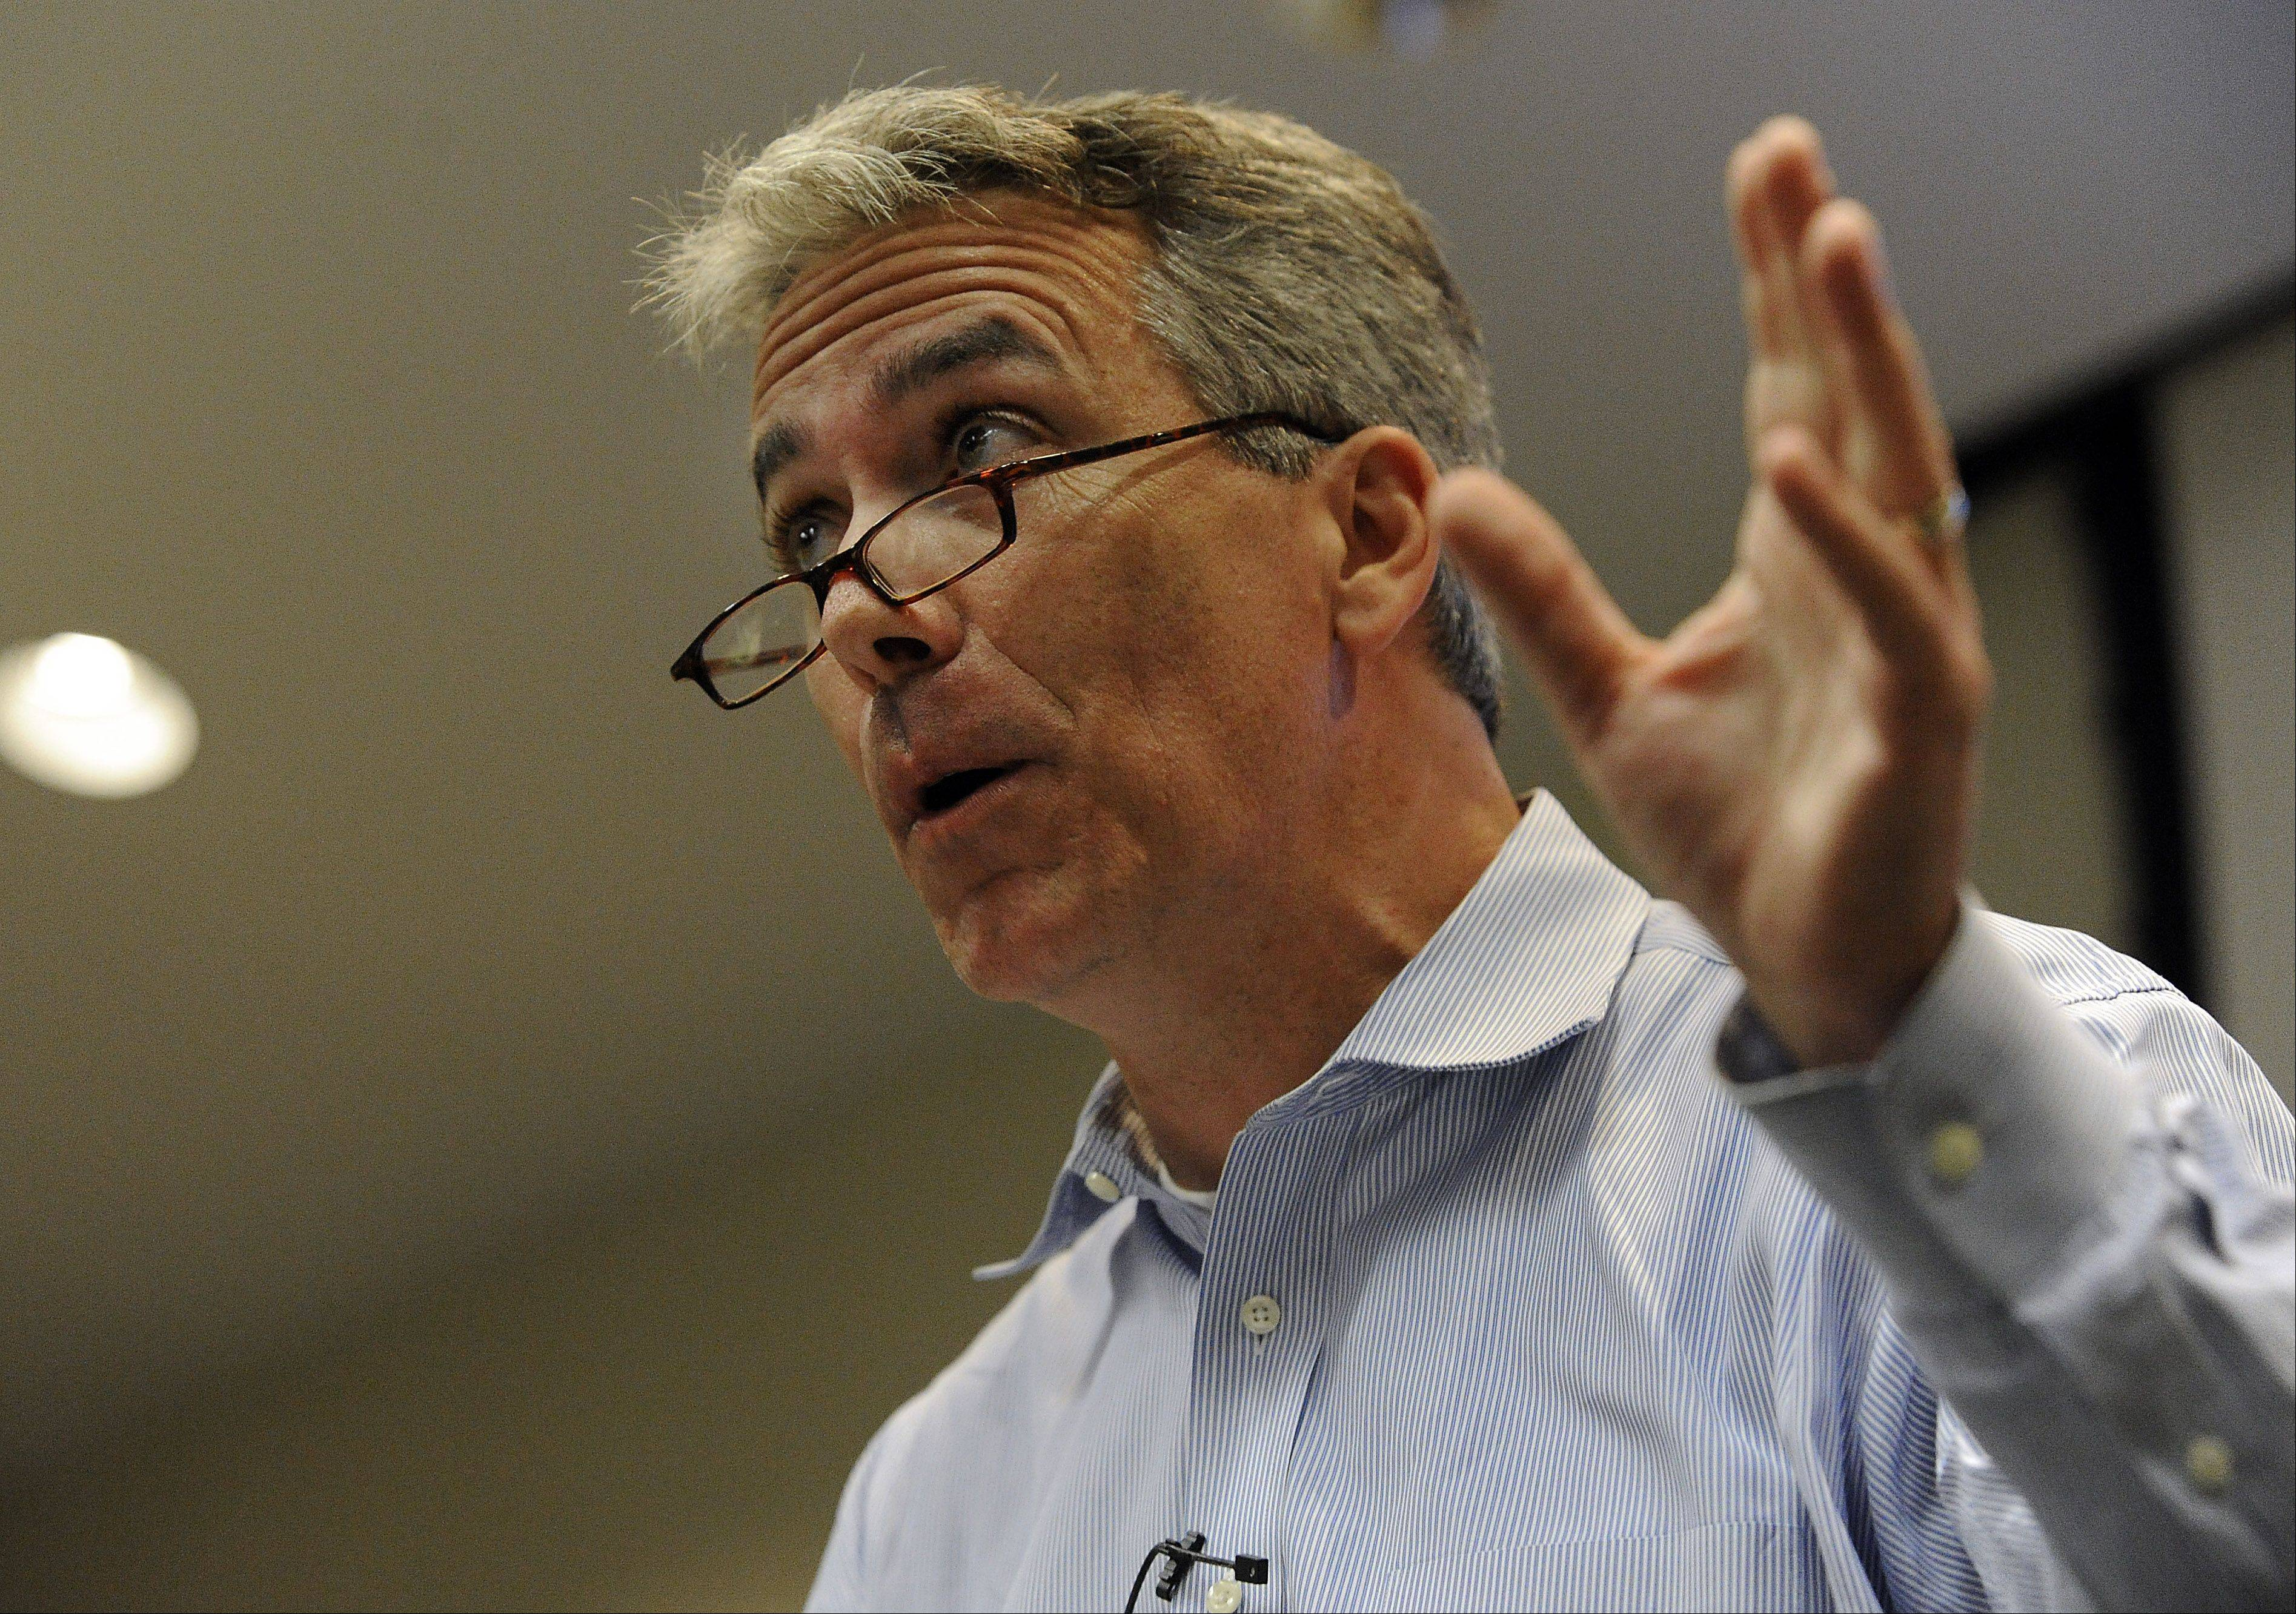 U.S. Rep. Joe Walsh makes speaks at a small-business forum at the Schaumburg Prairie Center for the Arts on Thursday.